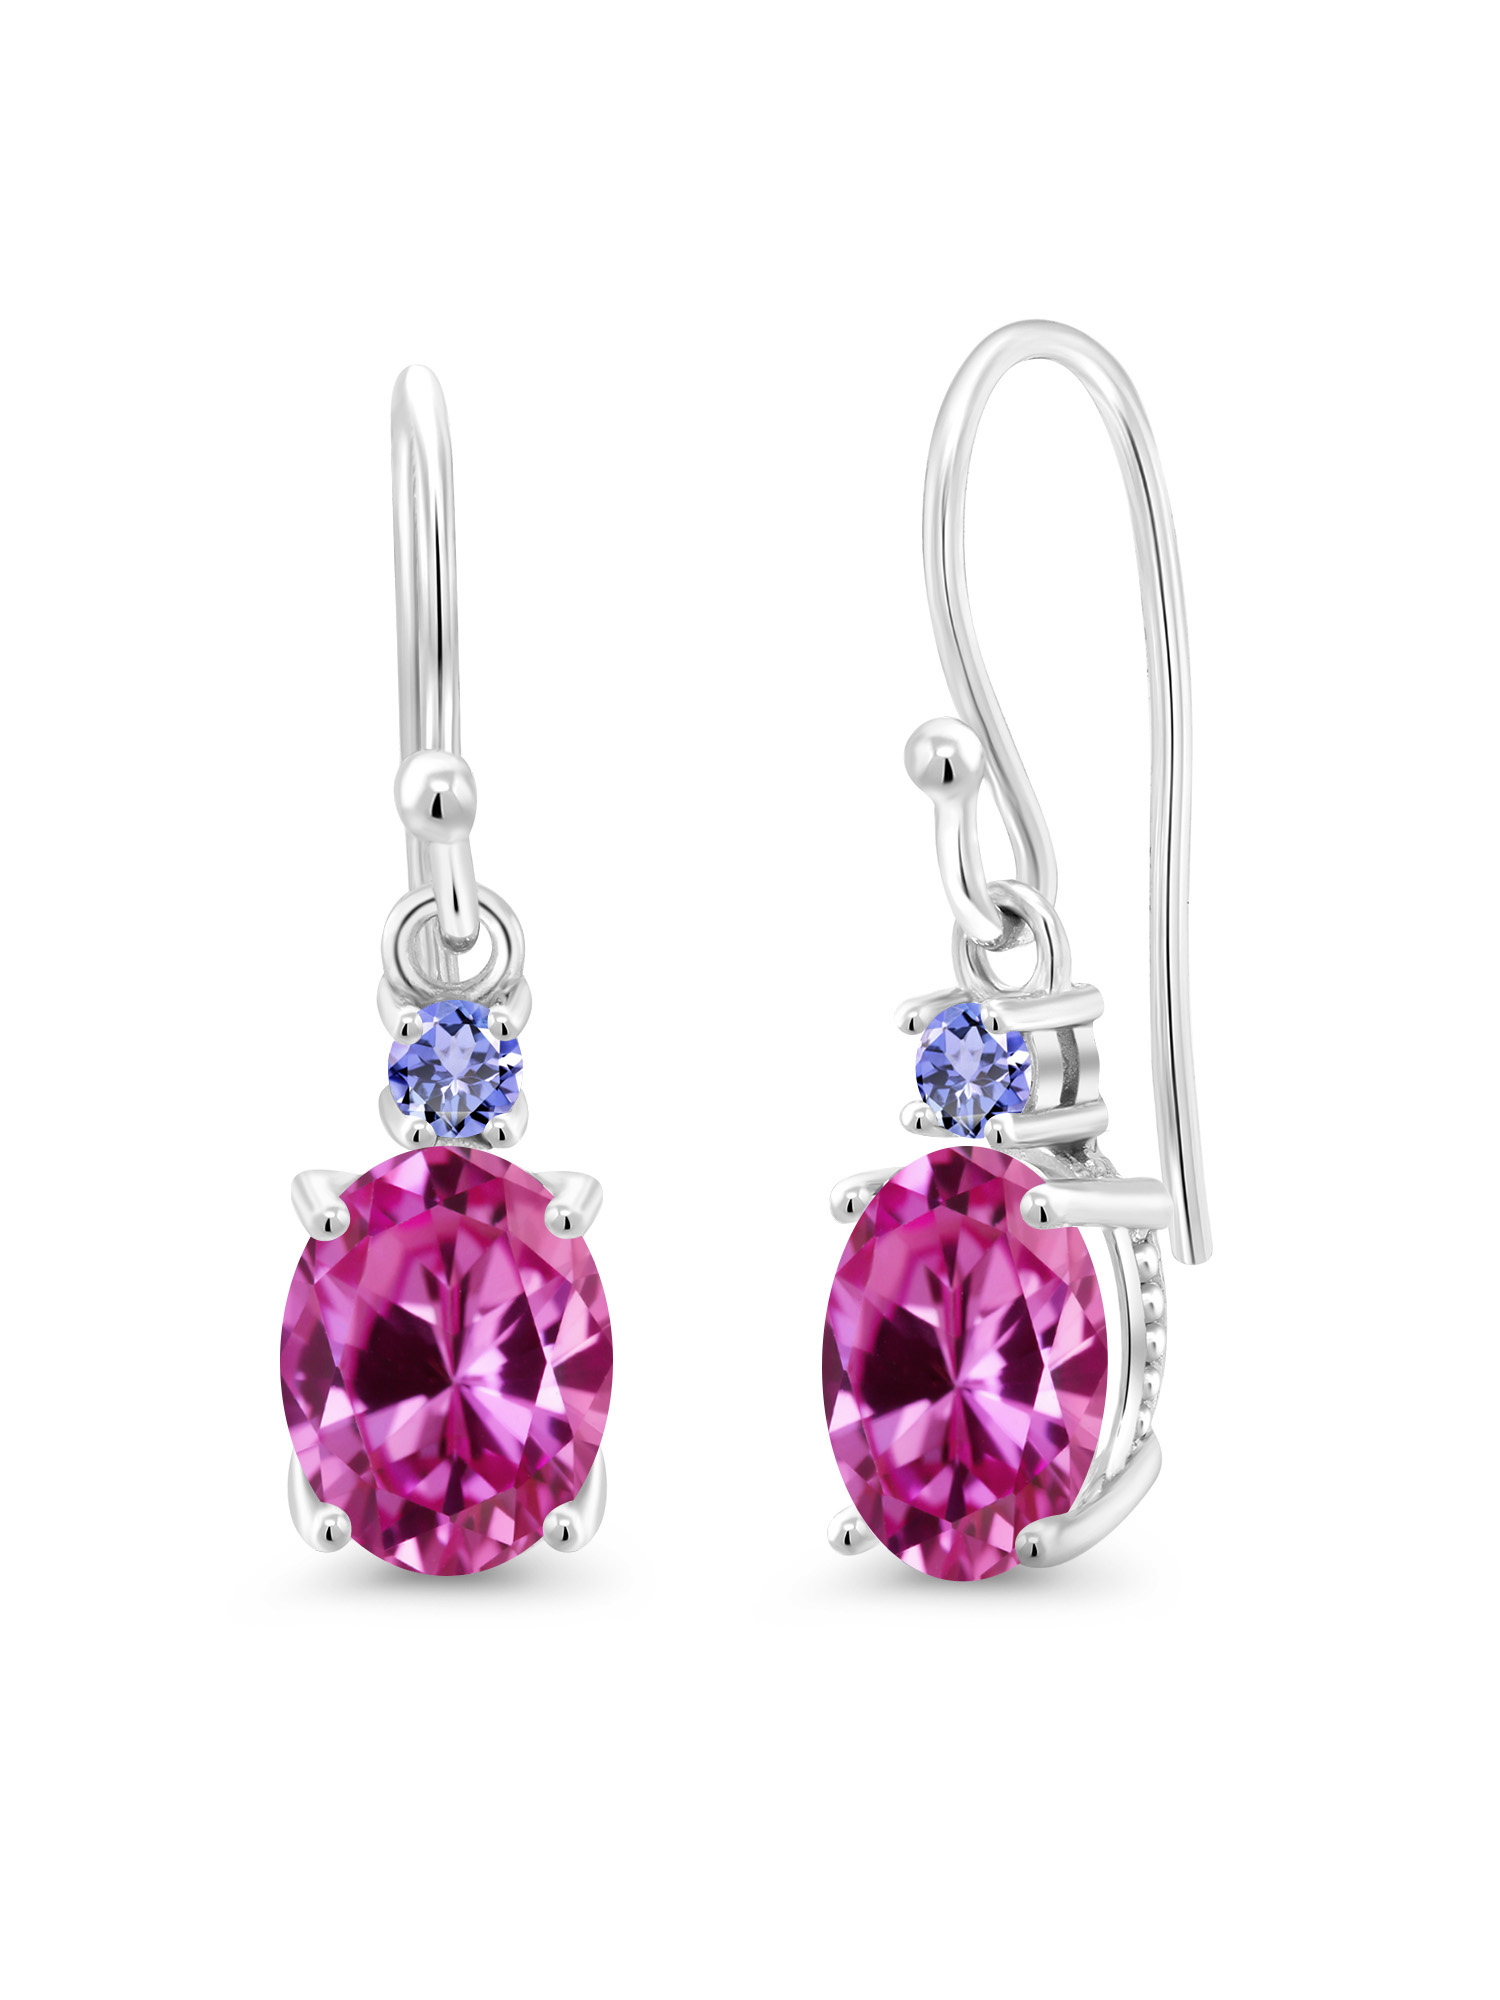 3.46 Ct Oval Pink Created Sapphire Blue Tanzanite 10K White Gold Earrings by